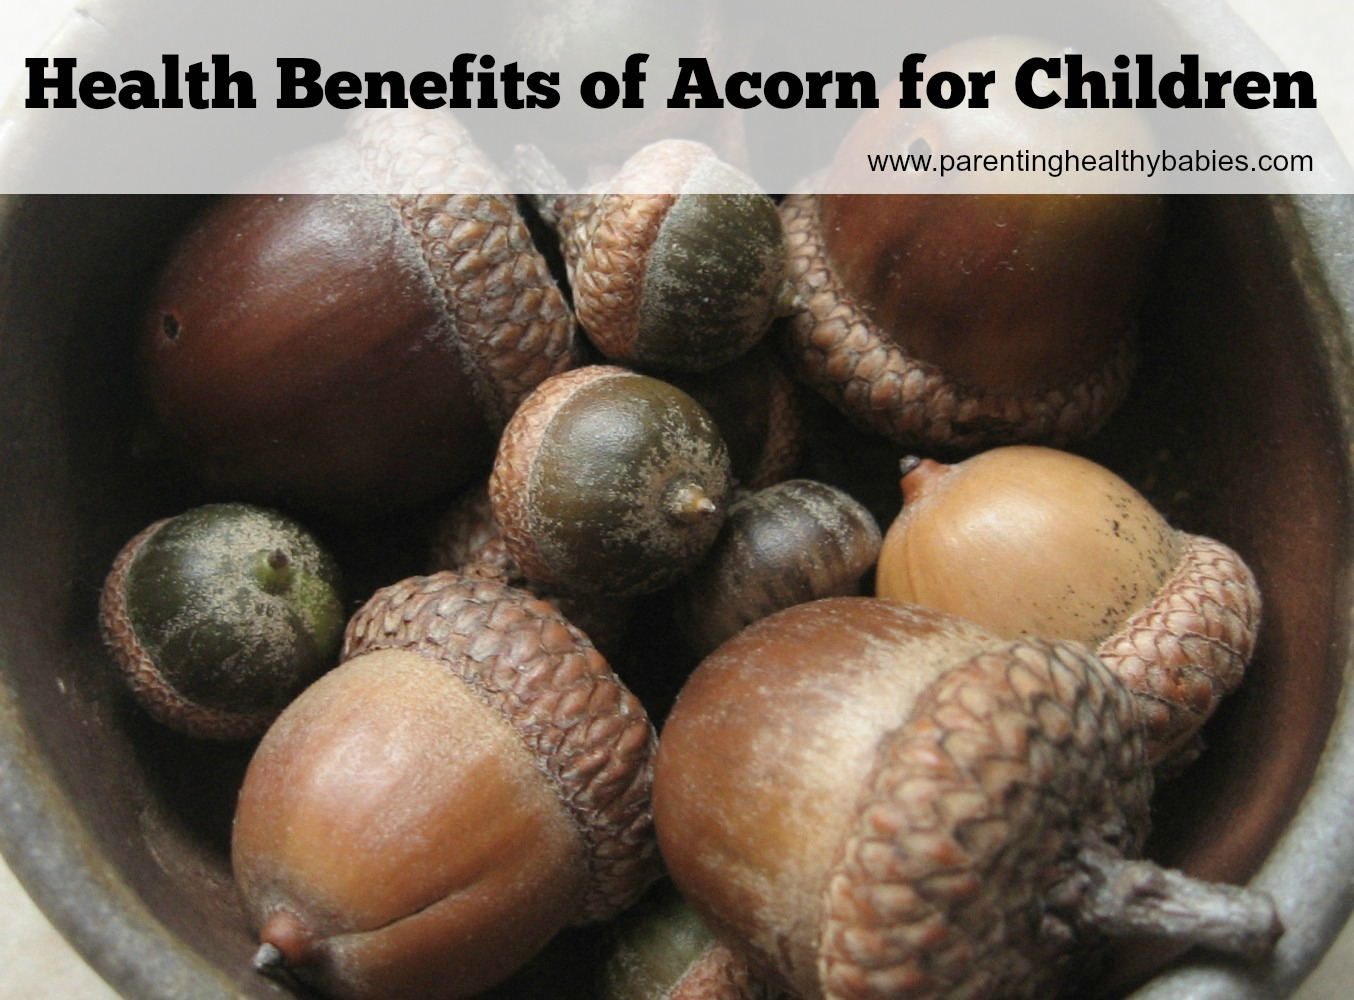 Health Benefits of Acorn for Kids